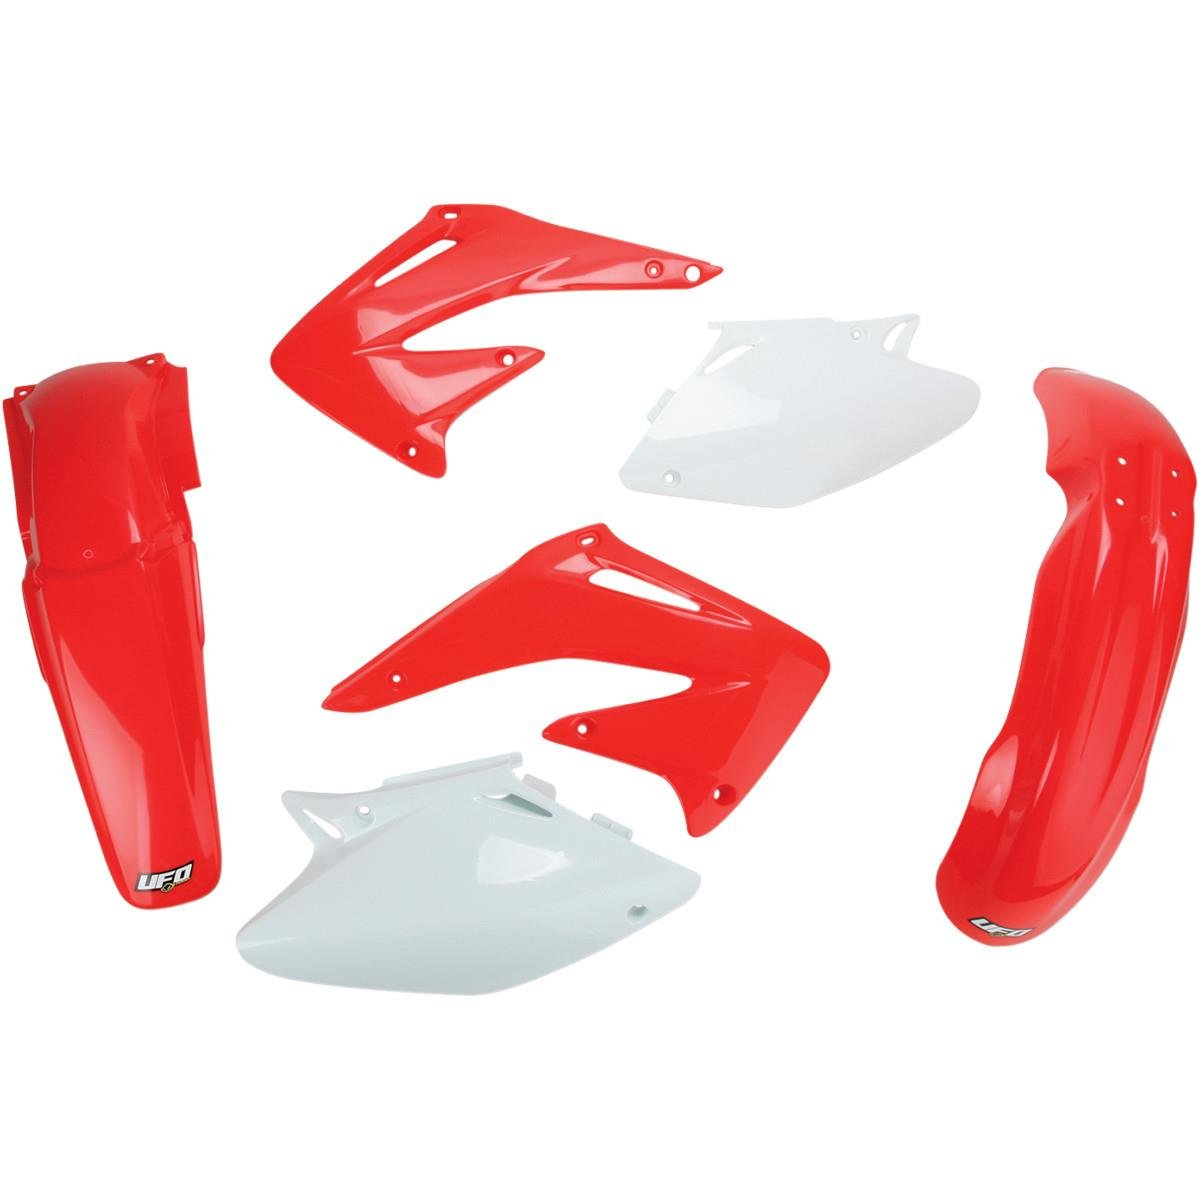 UFO HOKIT106-999 Complete Body KIT,HON CRF450 02-03